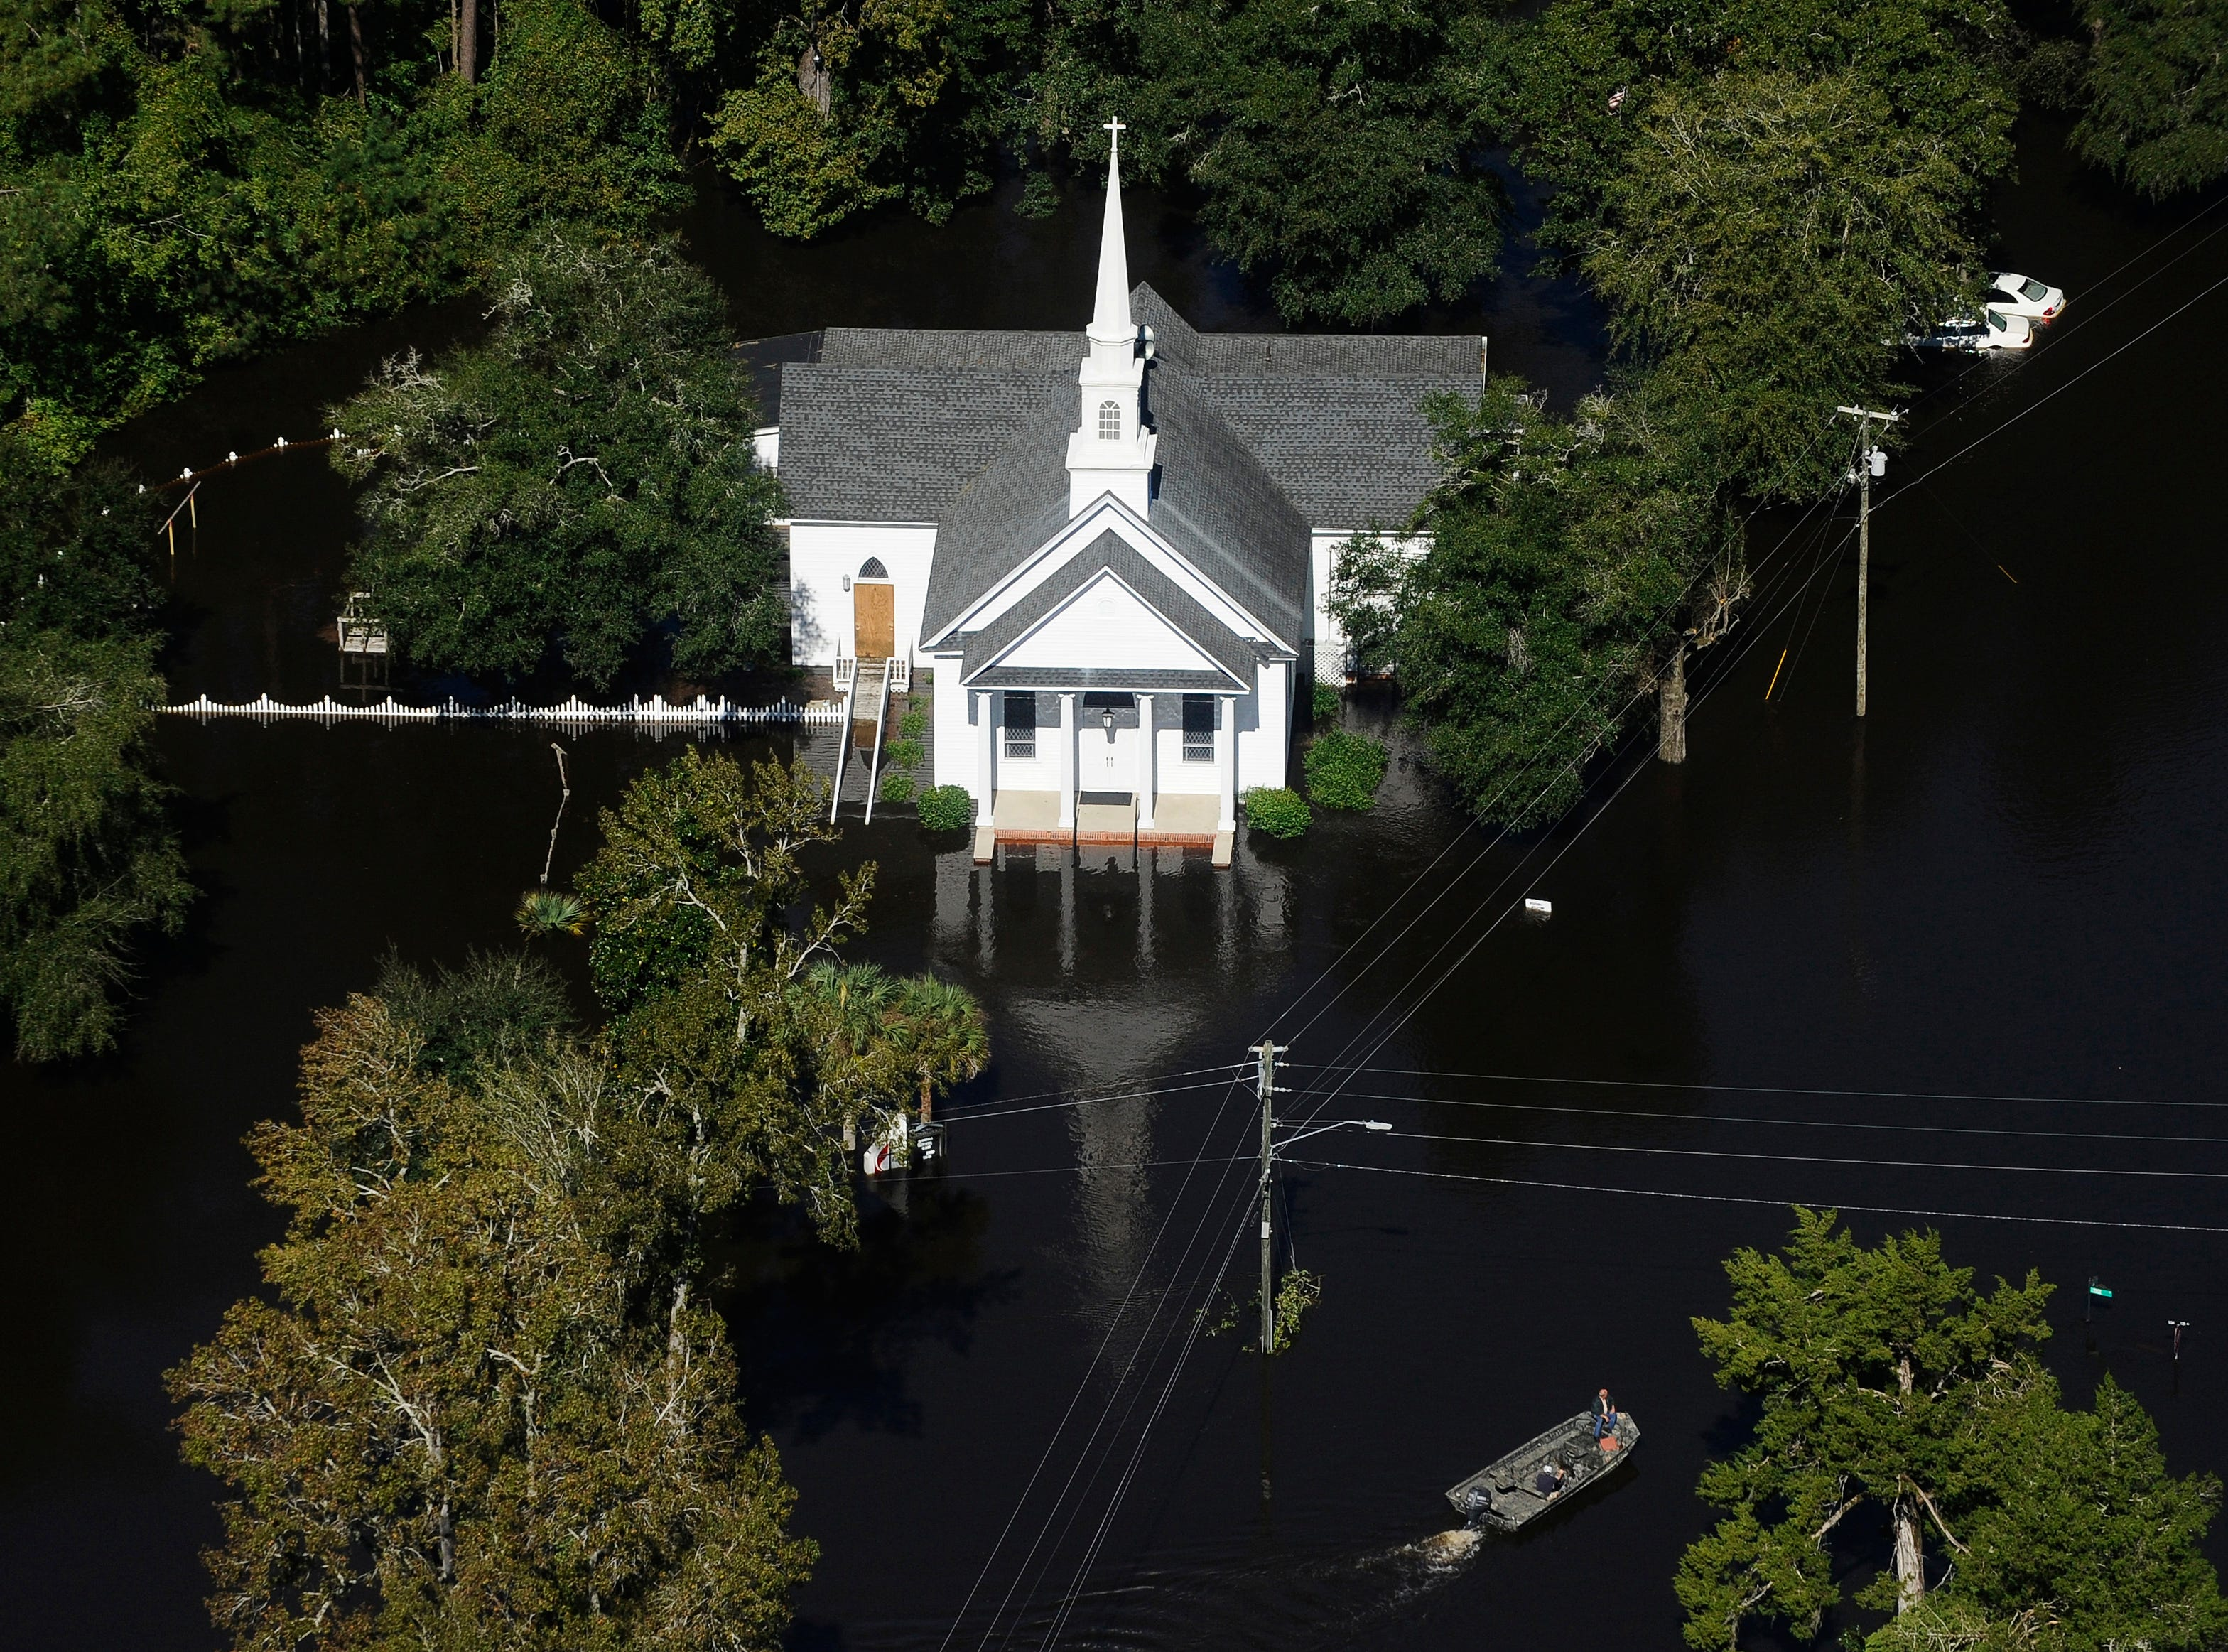 A boat passes a submerged church in Nichols Oct. 10, 2016. Nearly 1 million homes and businesses still did not have power that day in the Carolinas after Hurricane Matthew.